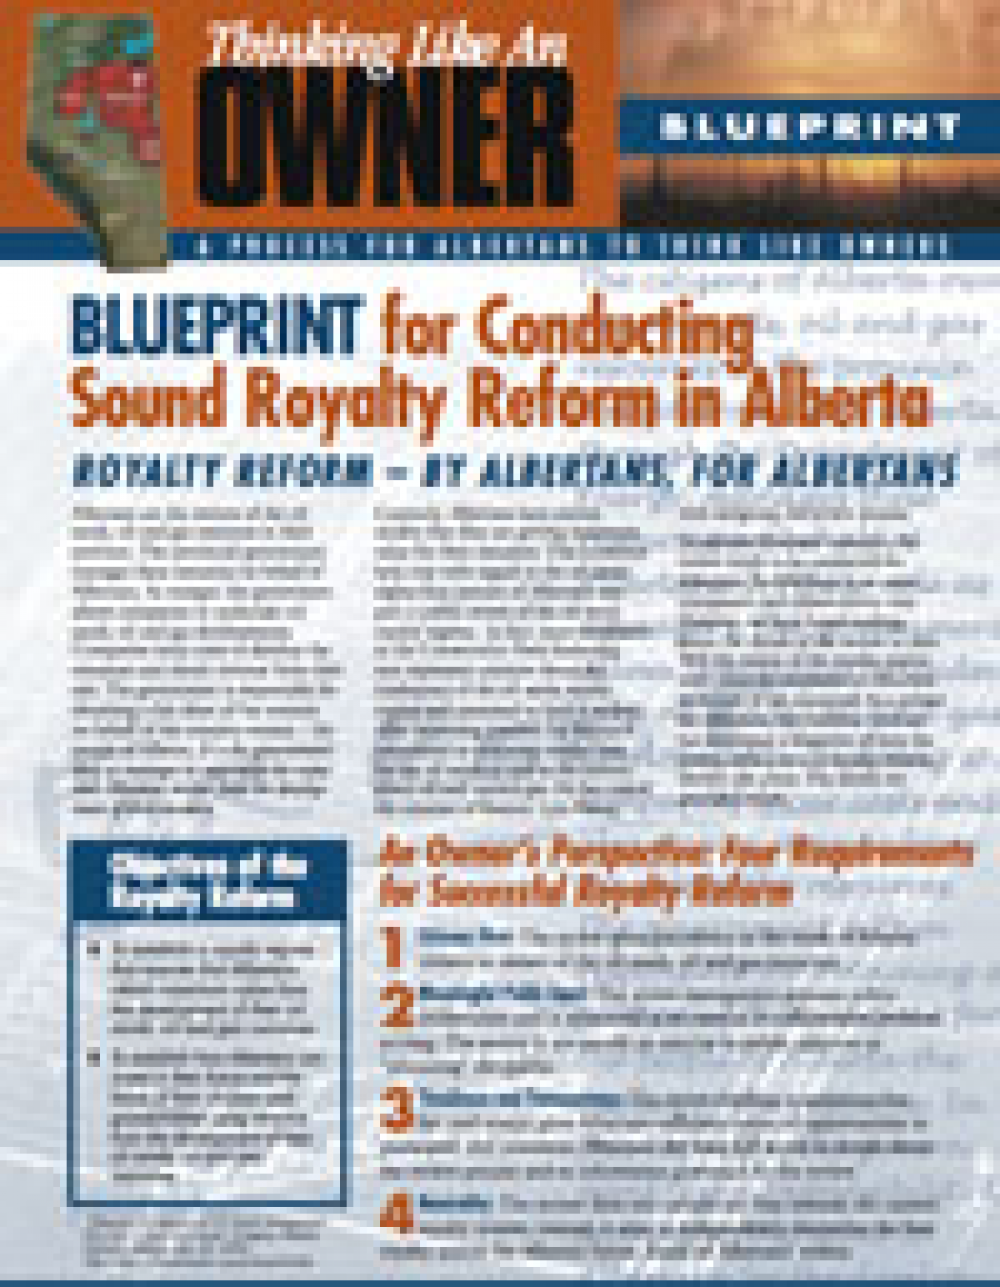 Blueprint for conducting sound royalty reform in alberta blueprint for conducting sound royalty reform in alberta publications pembina institute malvernweather Choice Image